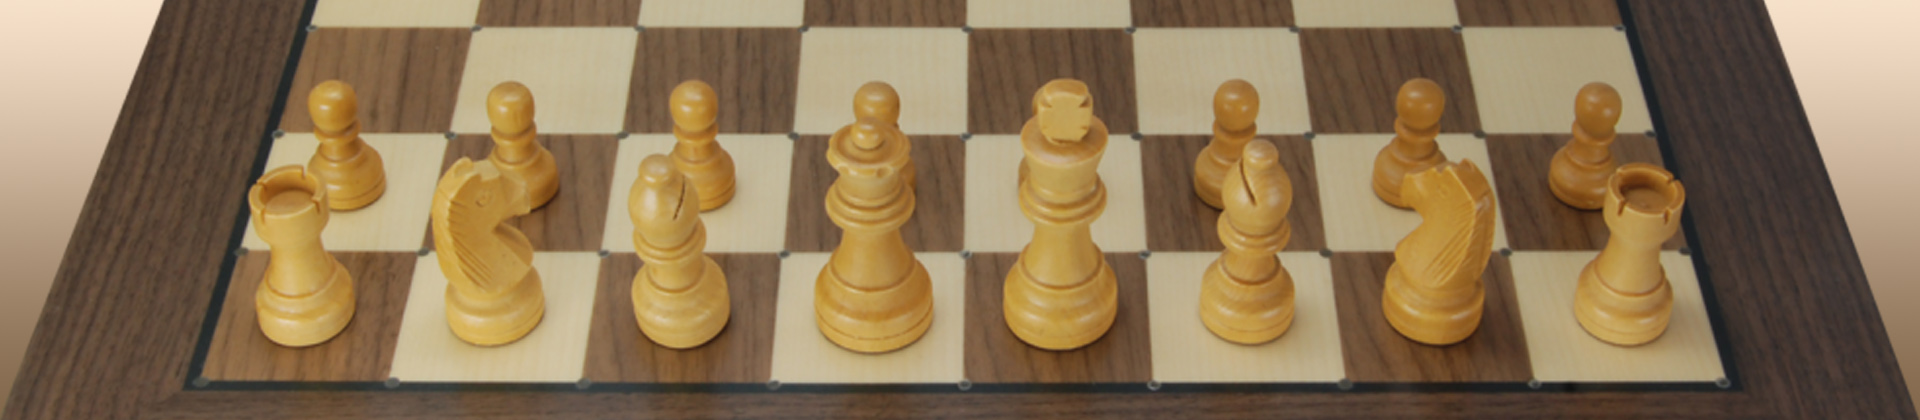 Chess-Boards-and-Chess-Pieces